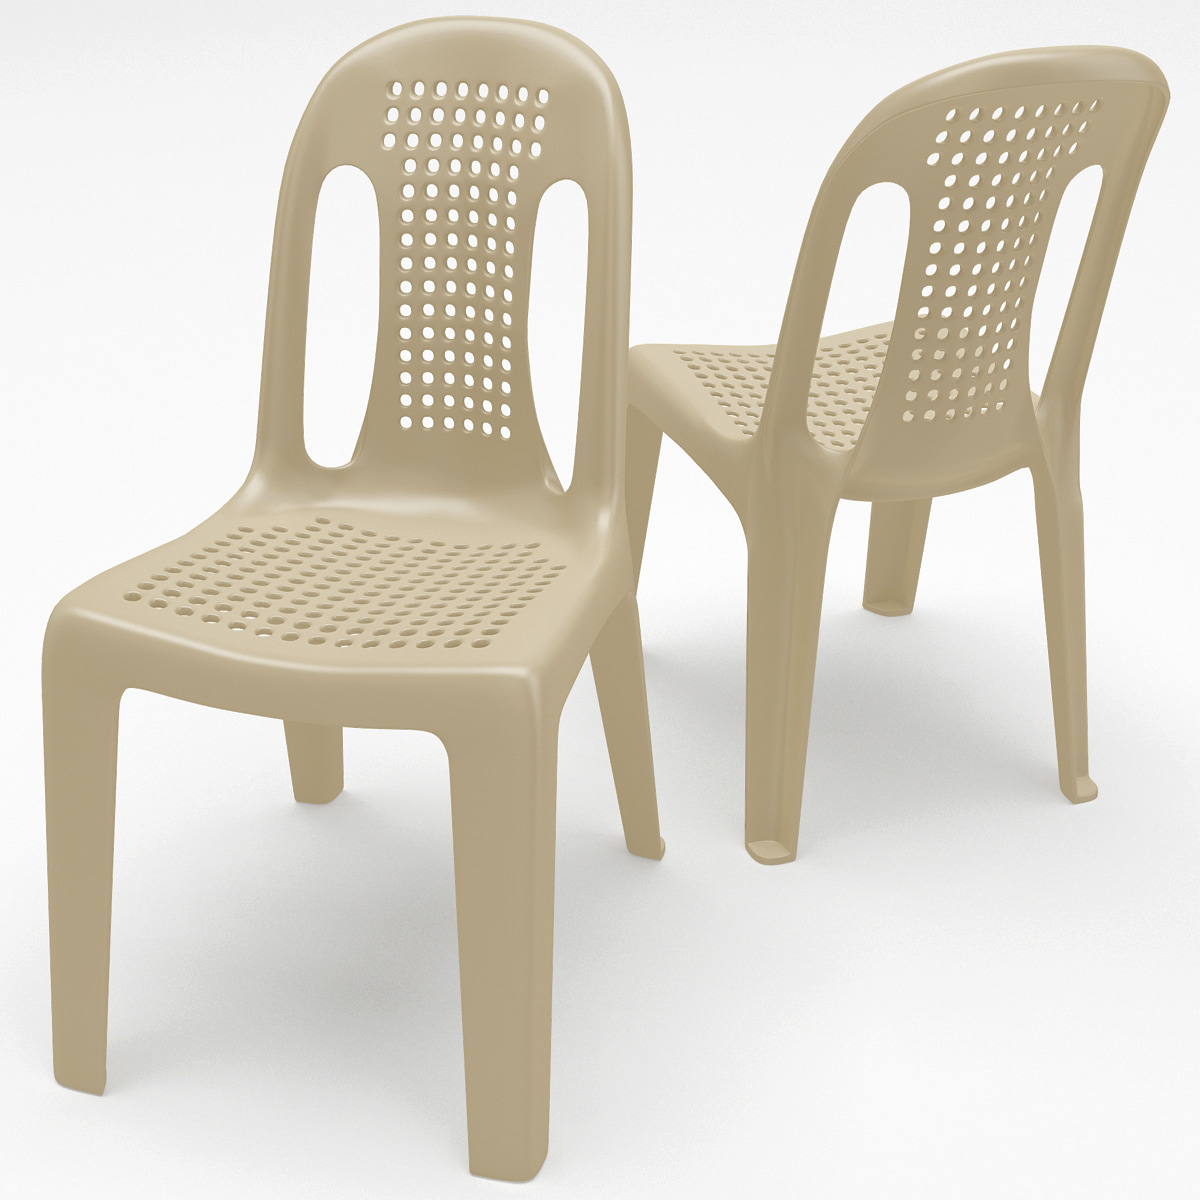 Monobloc Chair: Monobloc Chair 4 3d Max